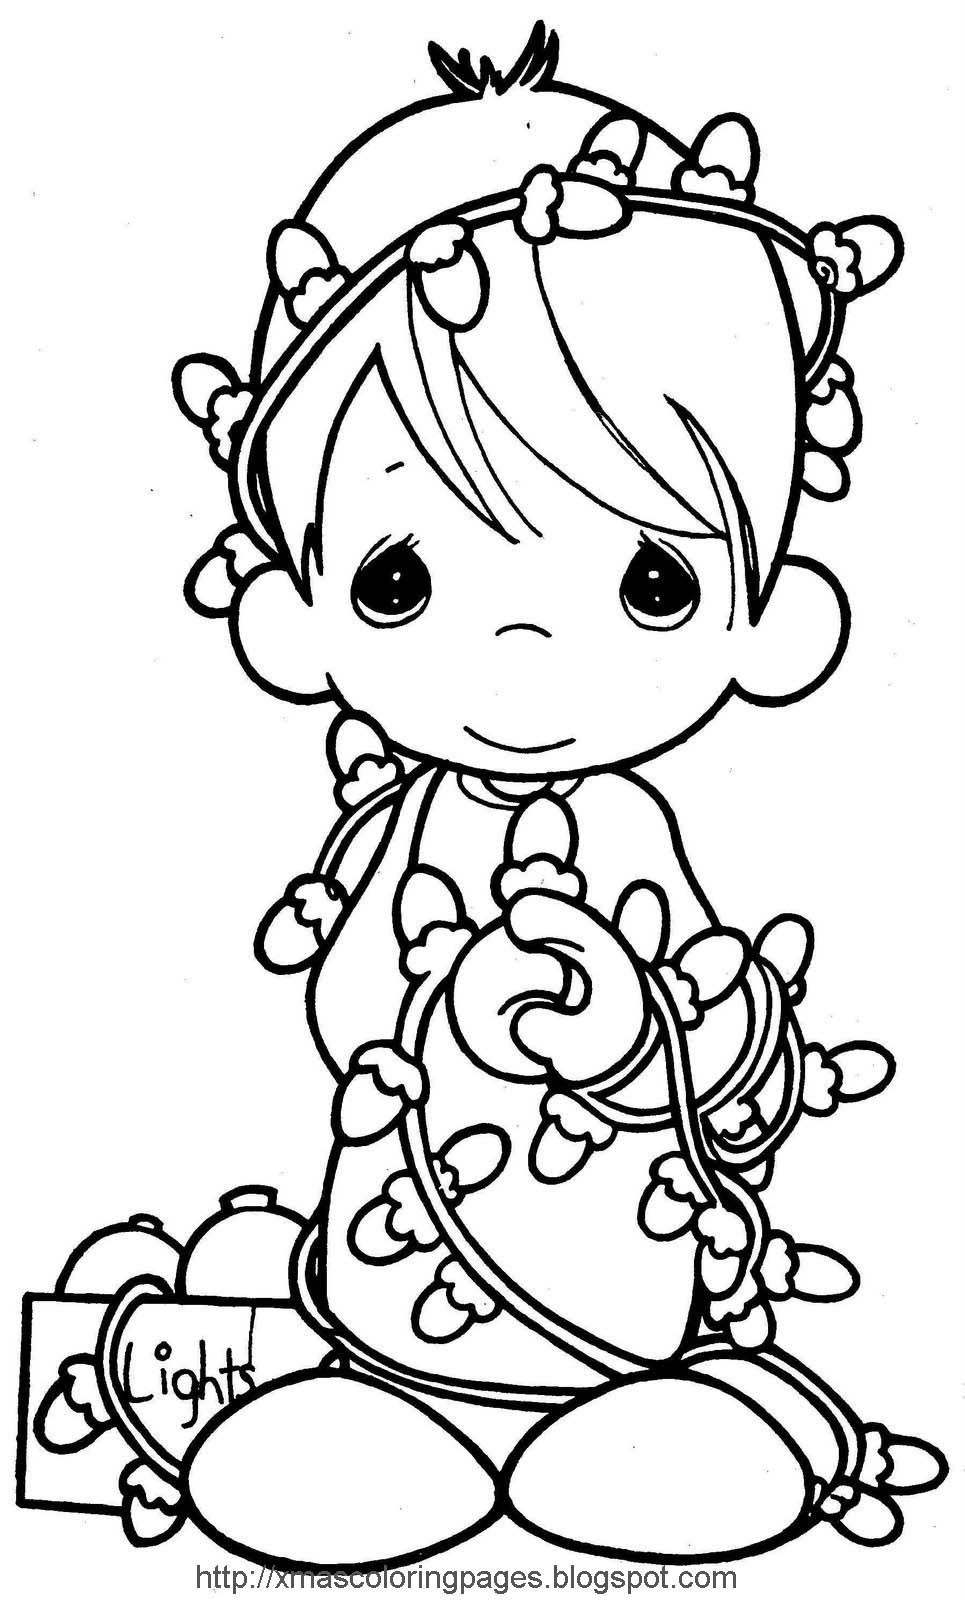 Precious Moments Christmas Coloring Pages Free at ...